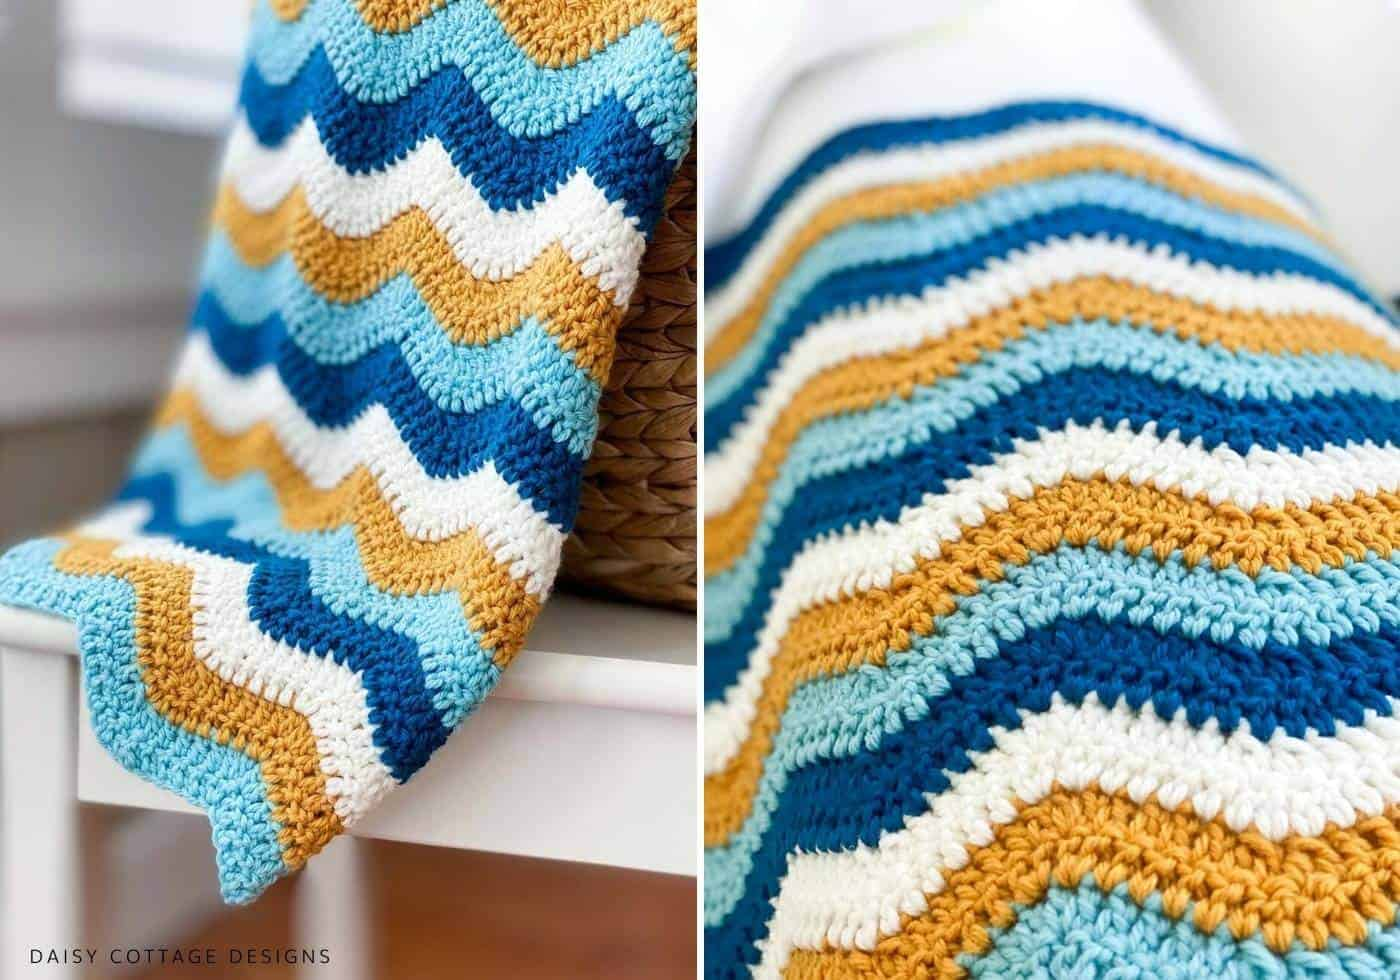 Mustard and Teal Crochet Ripple Blanket